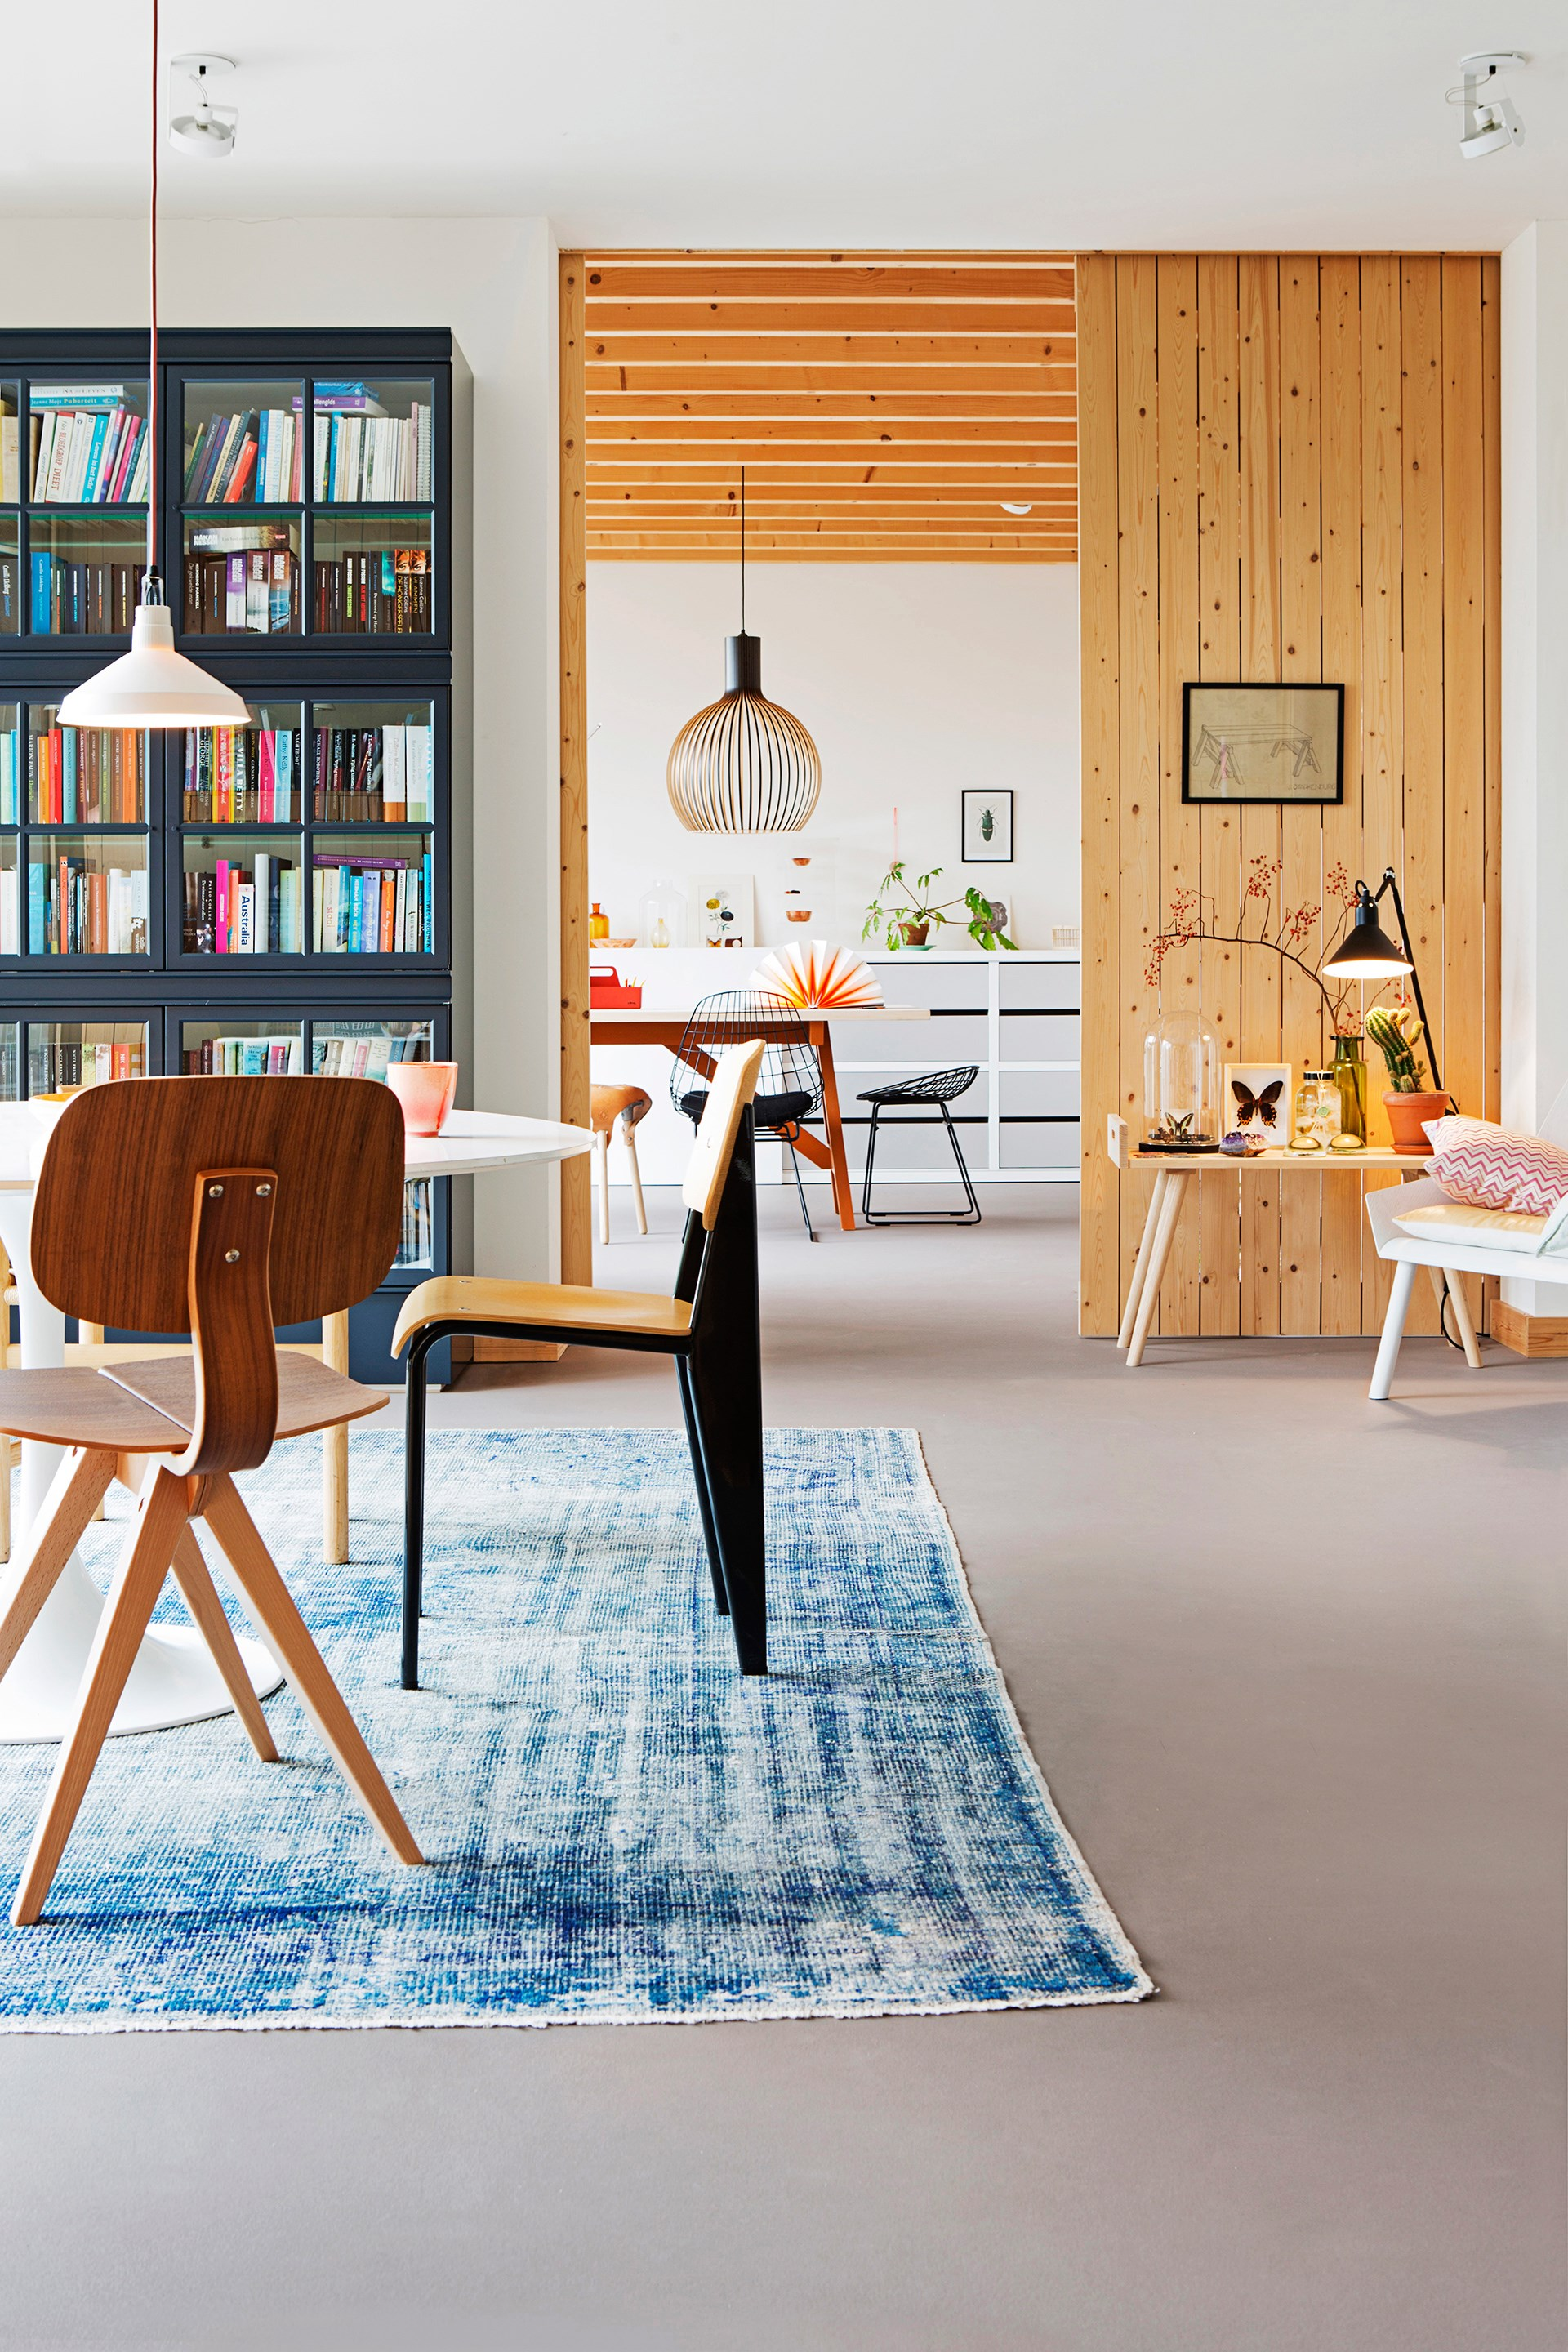 """The eco-friendly lino flooring unifies the home and is a breeze to keep clean. [Take a full tour here](http://www.homestolove.com.au/gallery-christiens-simply-beautiful-dutch-bungalow-2172/?utm_campaign=supplier/ target=""""_blank""""). Photo: Jeltje Janmaat / *real living*"""